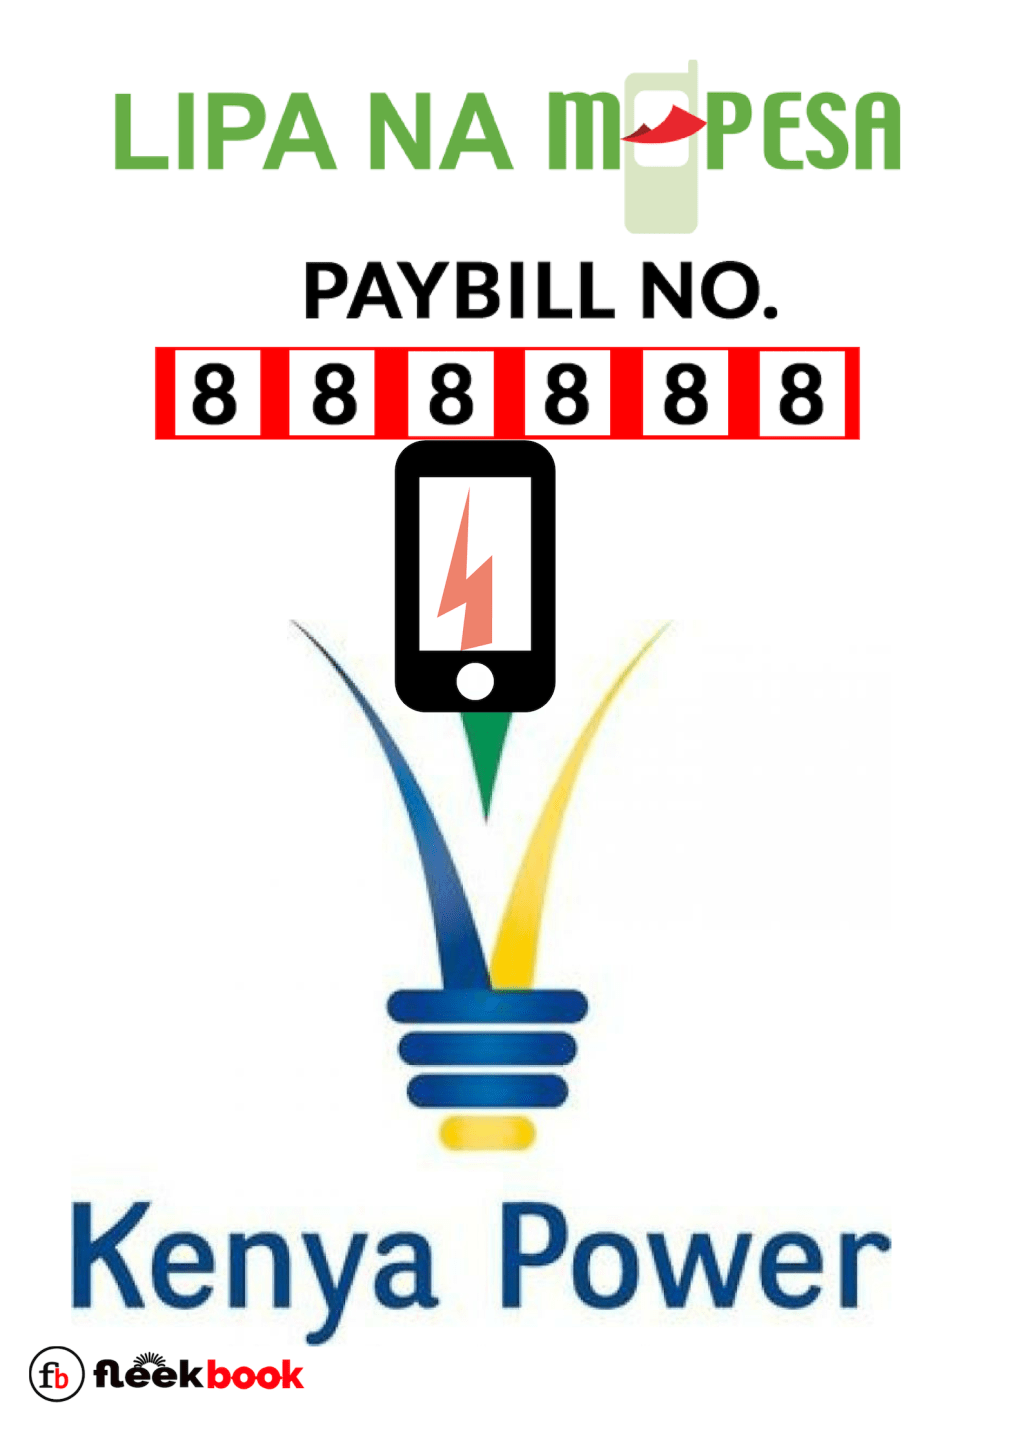 Buy KPLC tokens via mpesa